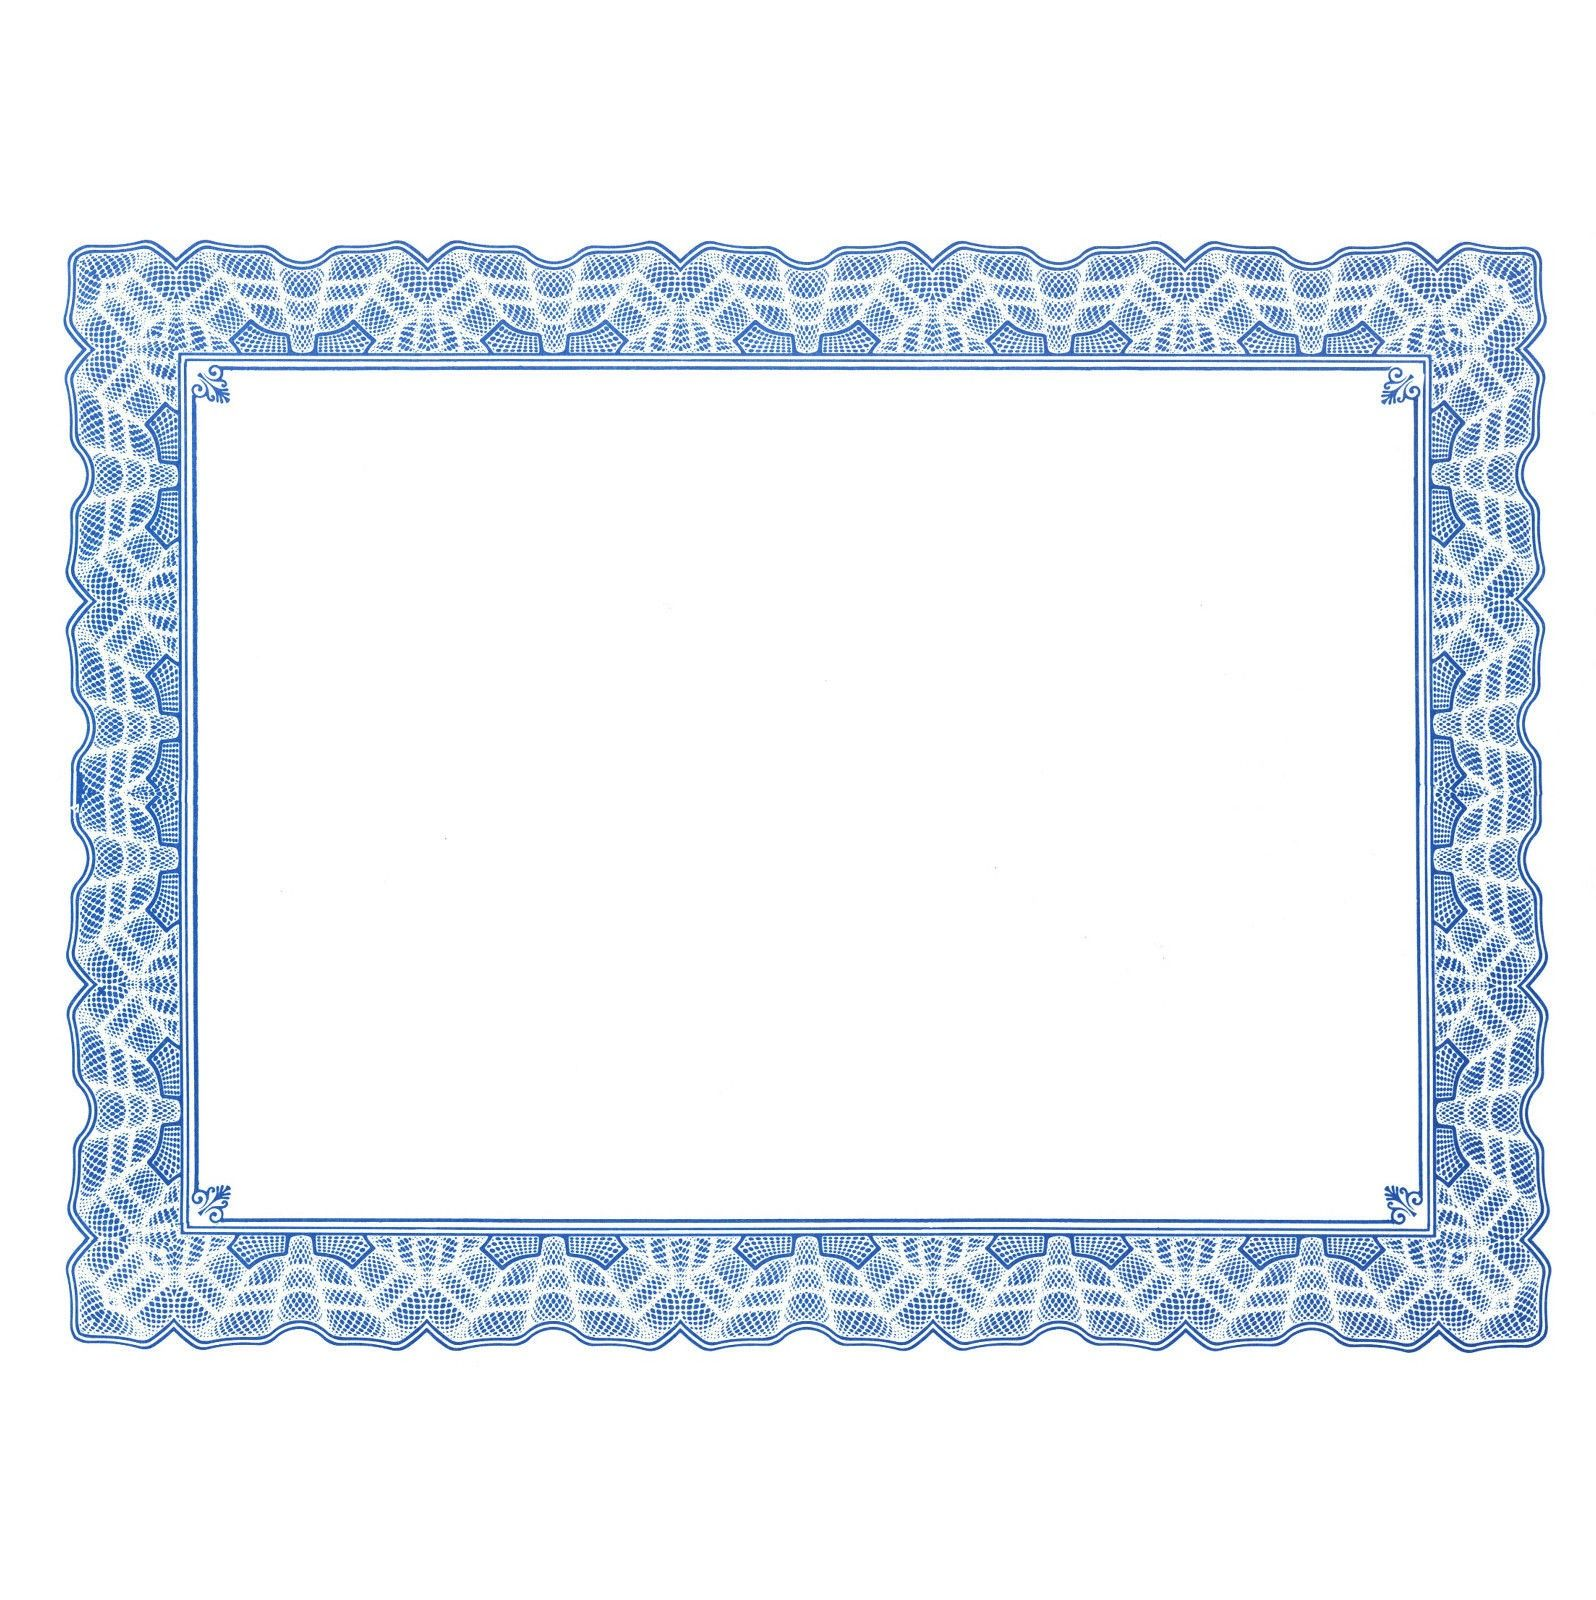 Free Certificate Border Templates For Word Besttemplates123 Bingkai Pola Jahitan Pola